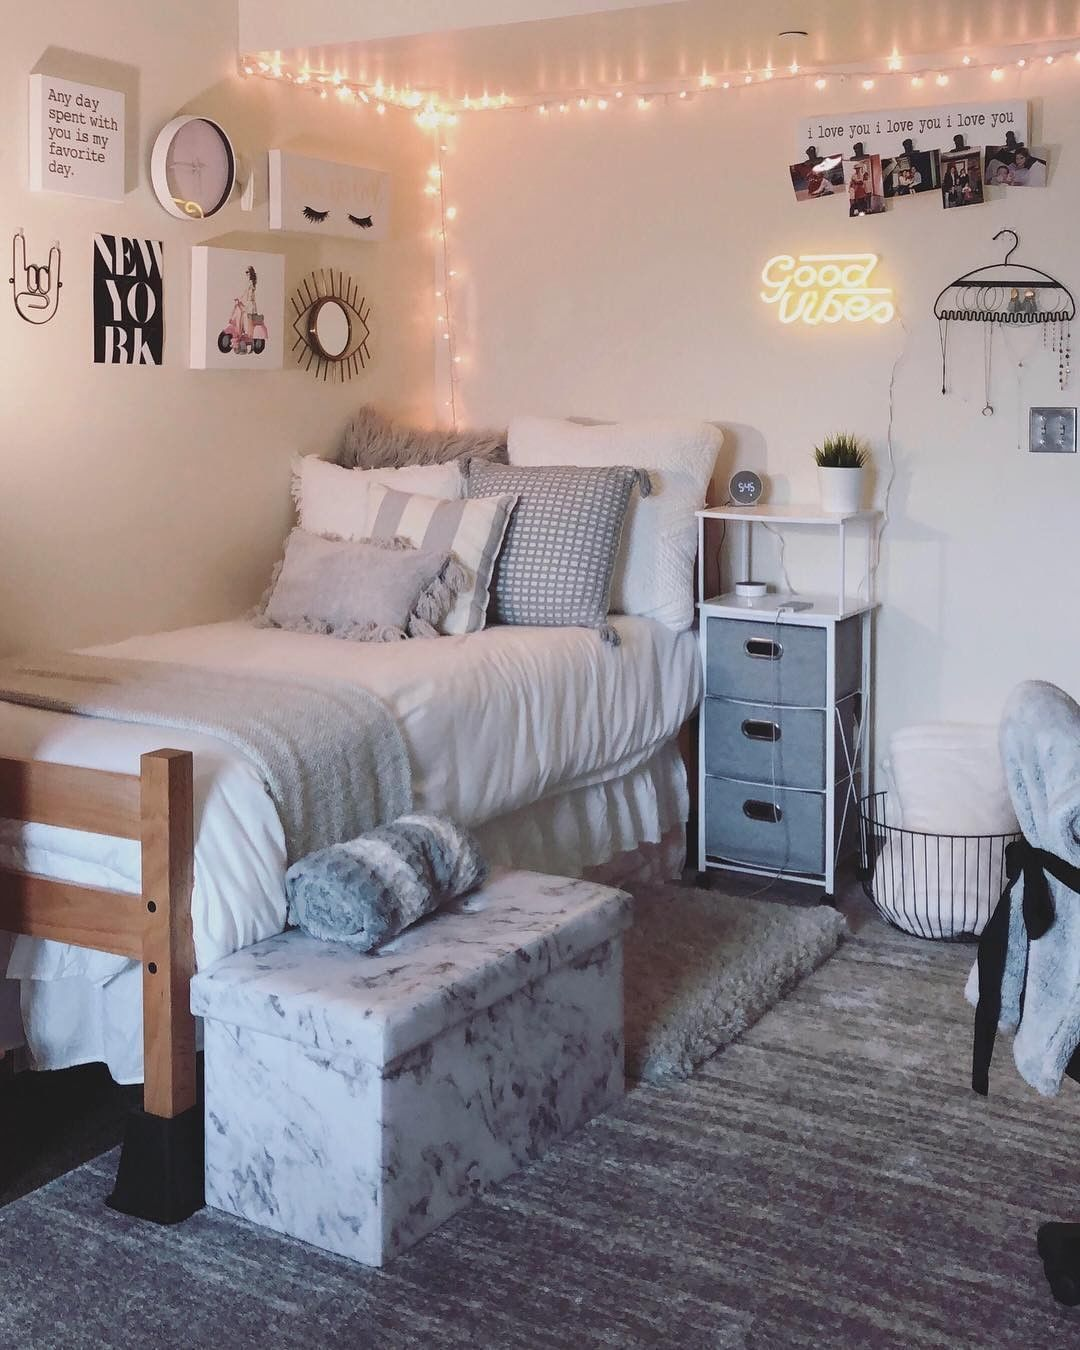 15 Best Dorm Room Ideas You Need To Copy College Dorm Room Decor Dorm Room Inspiration Dorm Room Designs Dorm room decoration ideas